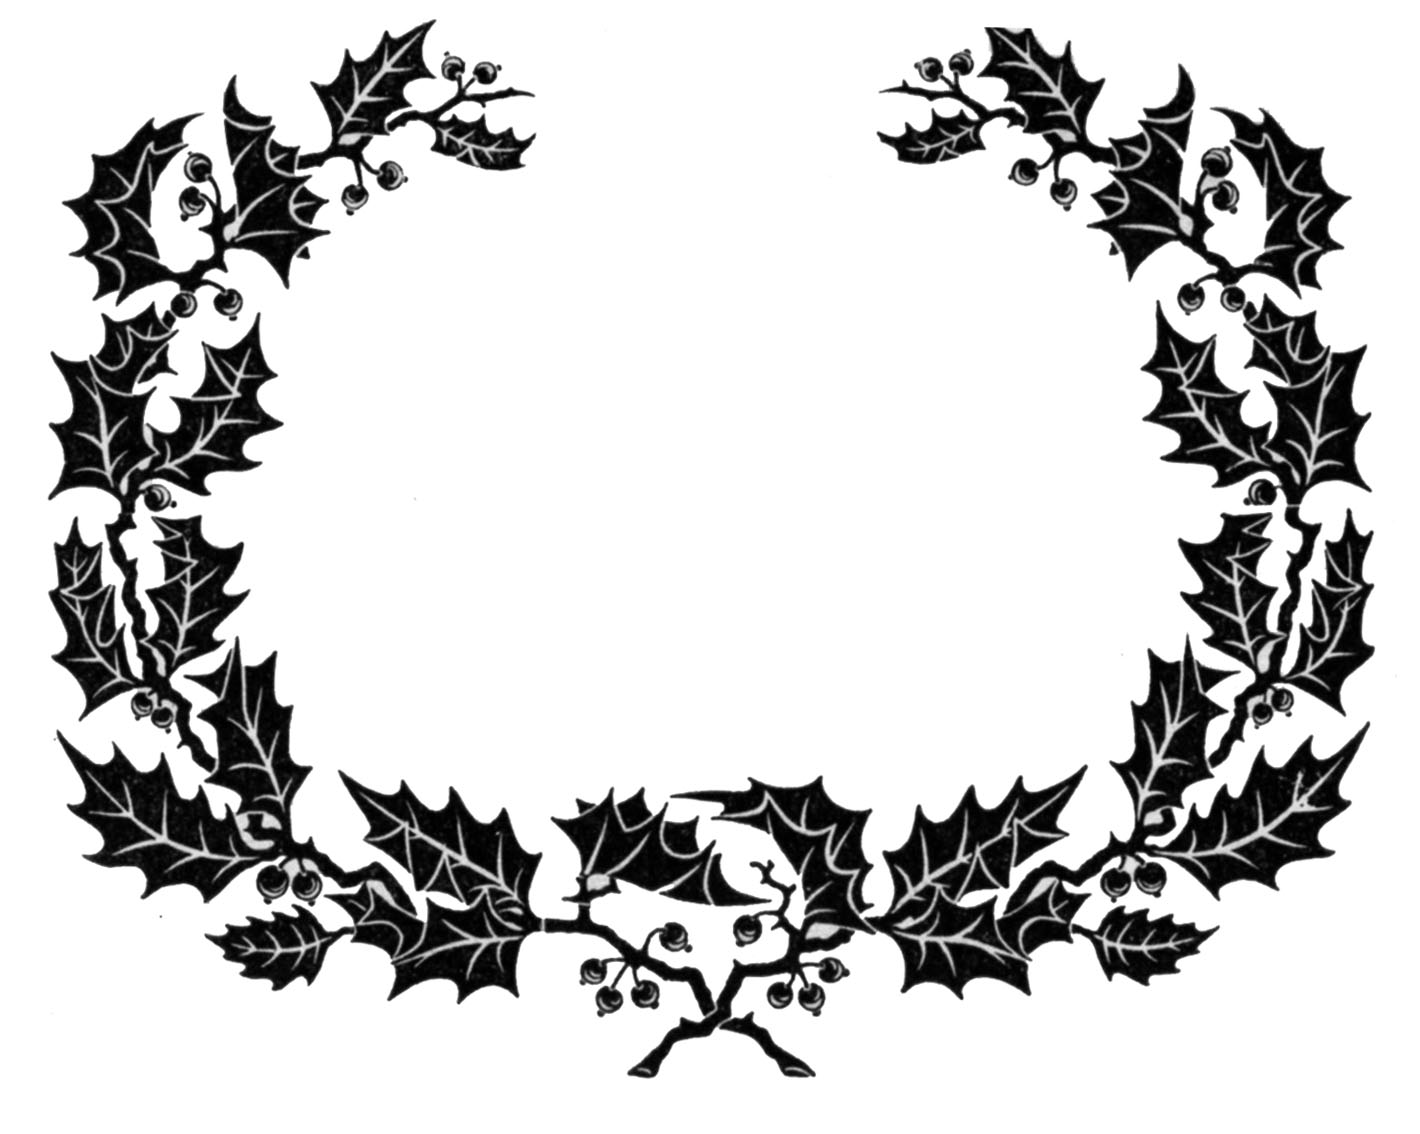 clip art holly leaves black and white - photo #21